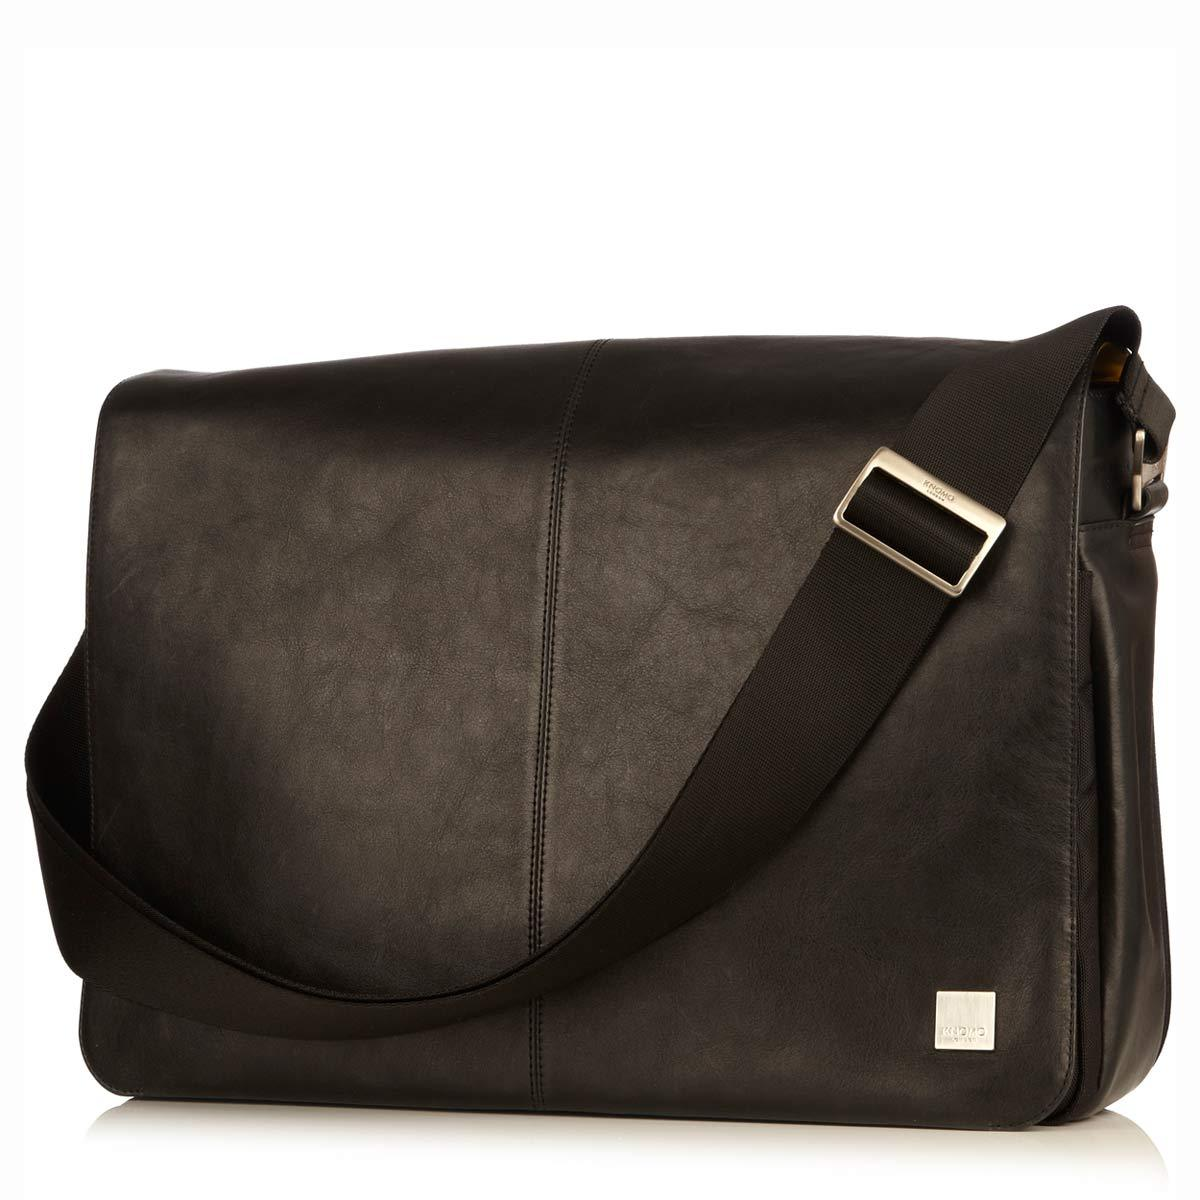 "KNOMO Bungo Laptop Messenger Bag Three Quarter View With Strap 15.6"" -  Black 